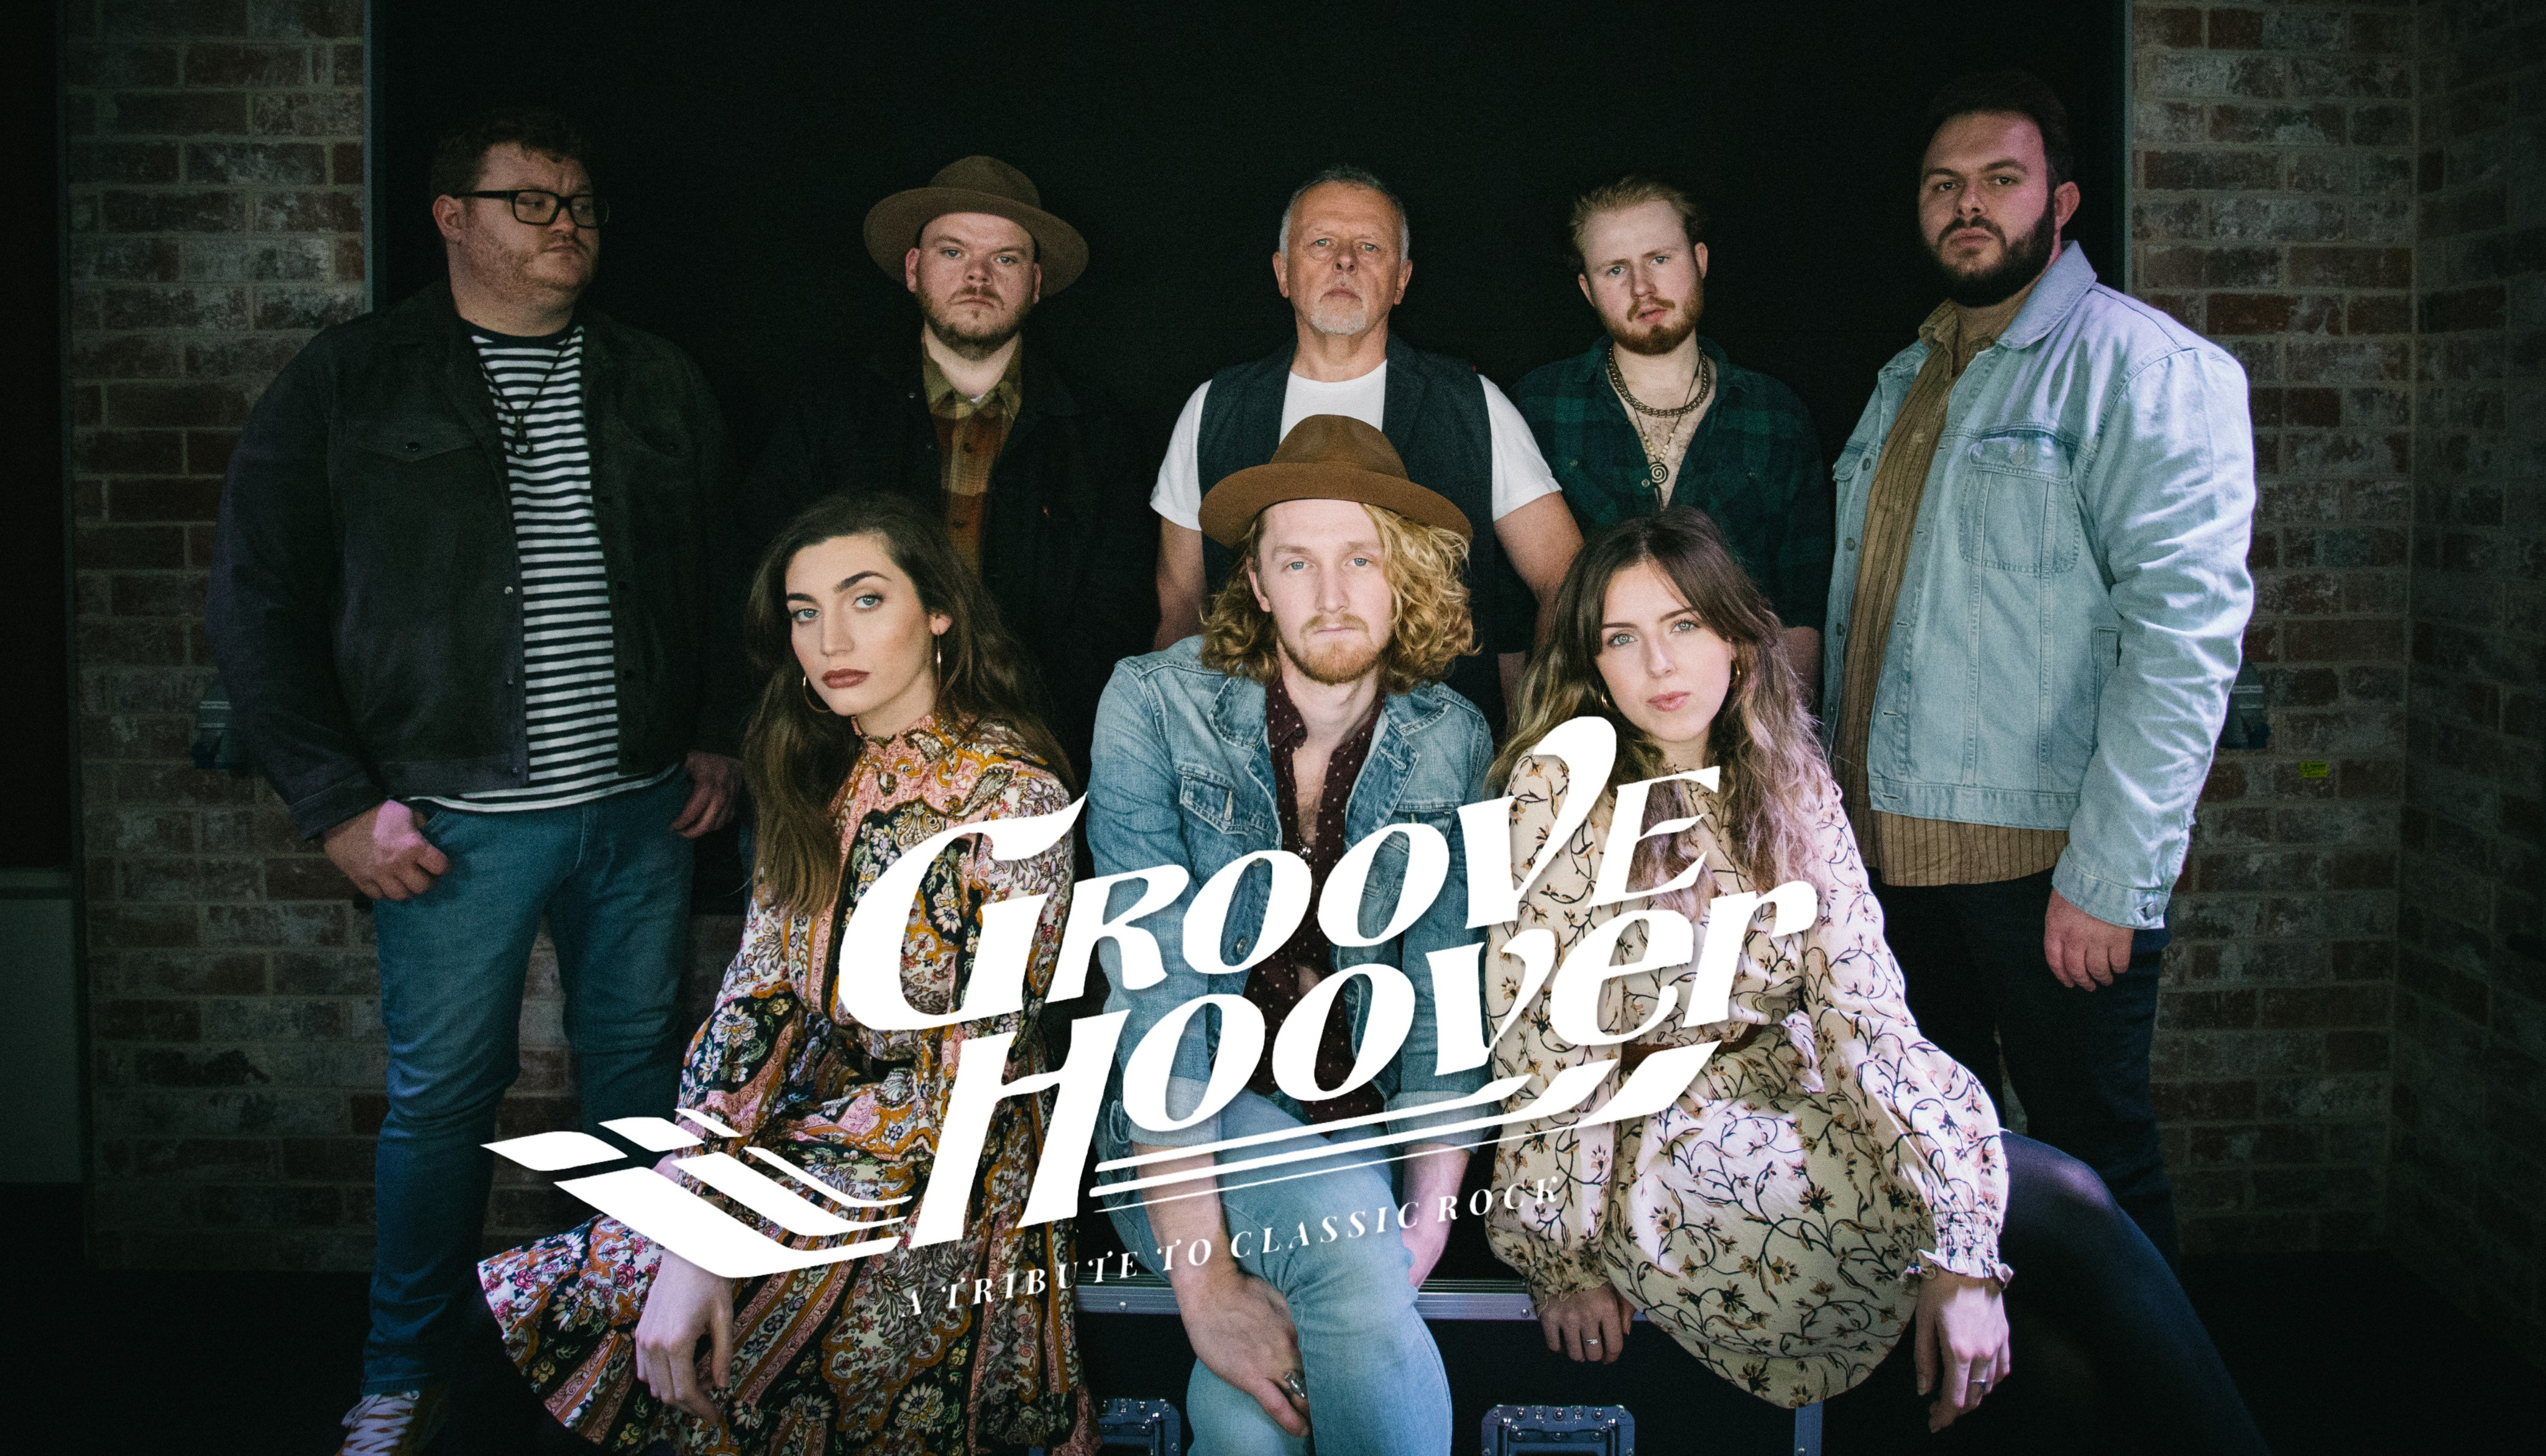 Groove Hoover